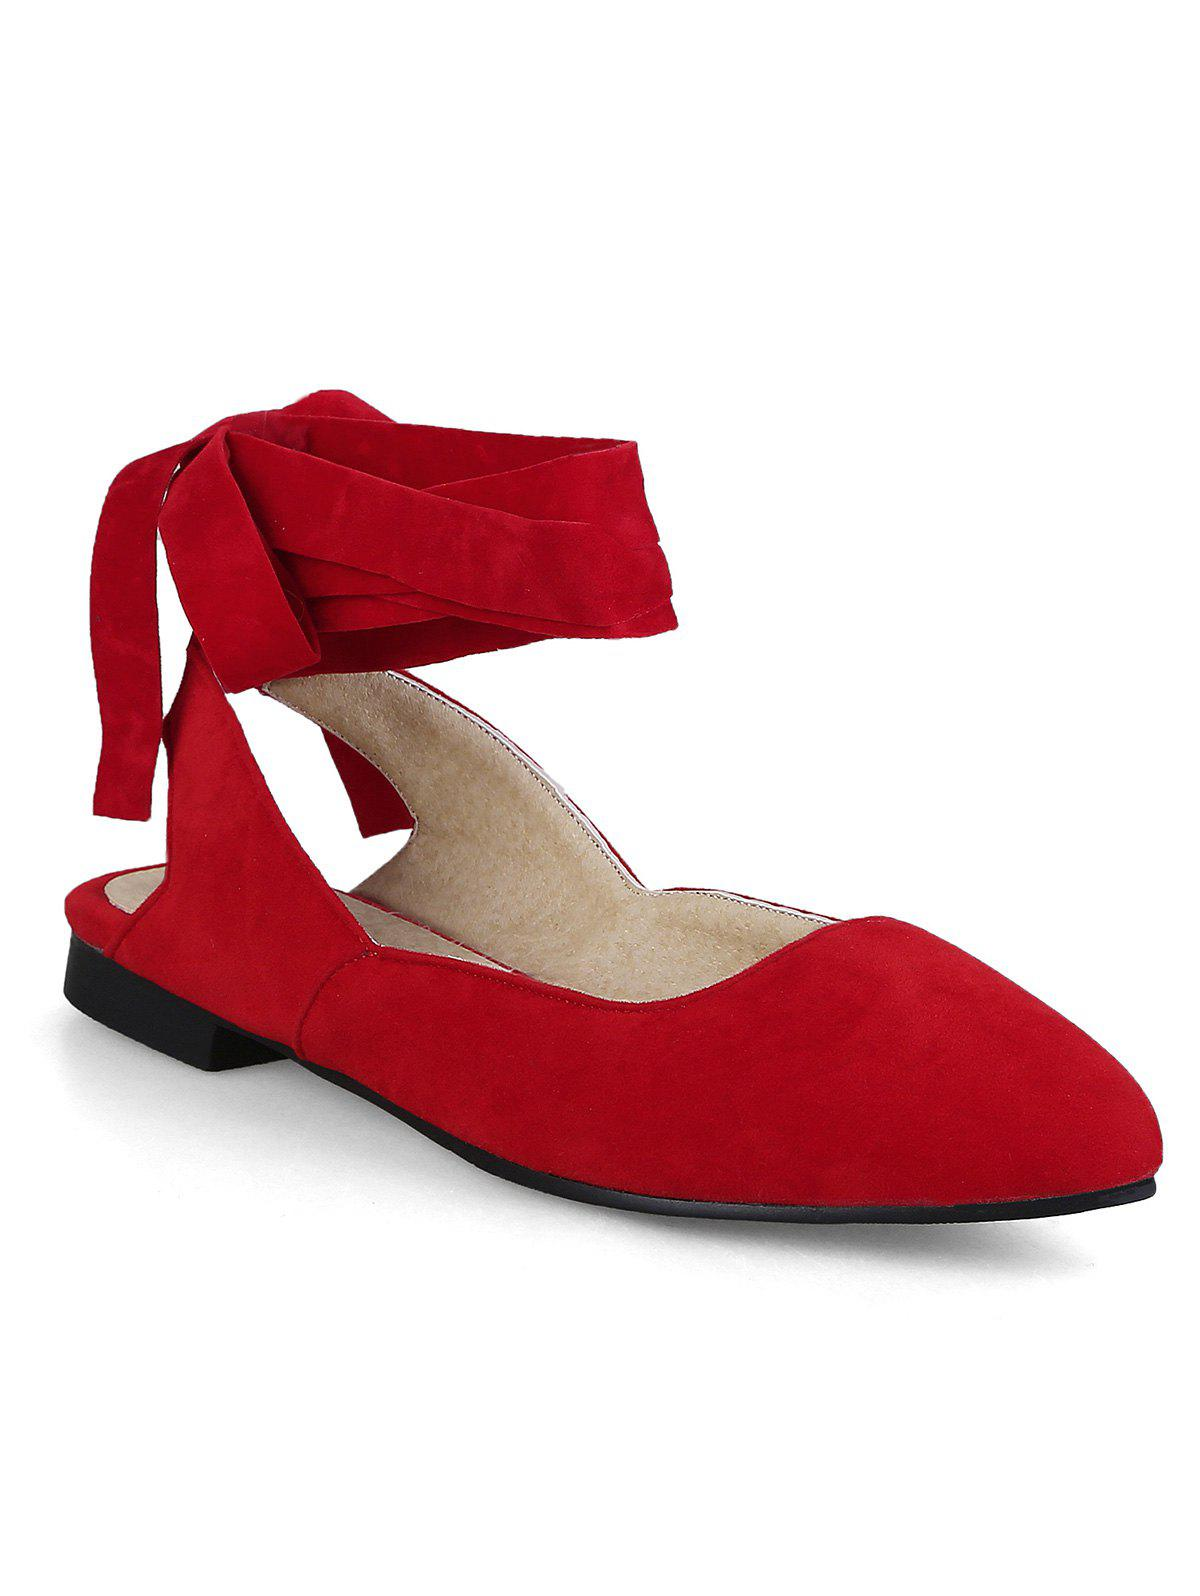 Ribbon Lace Up Pointed Toe Slingback Flats - RED 43